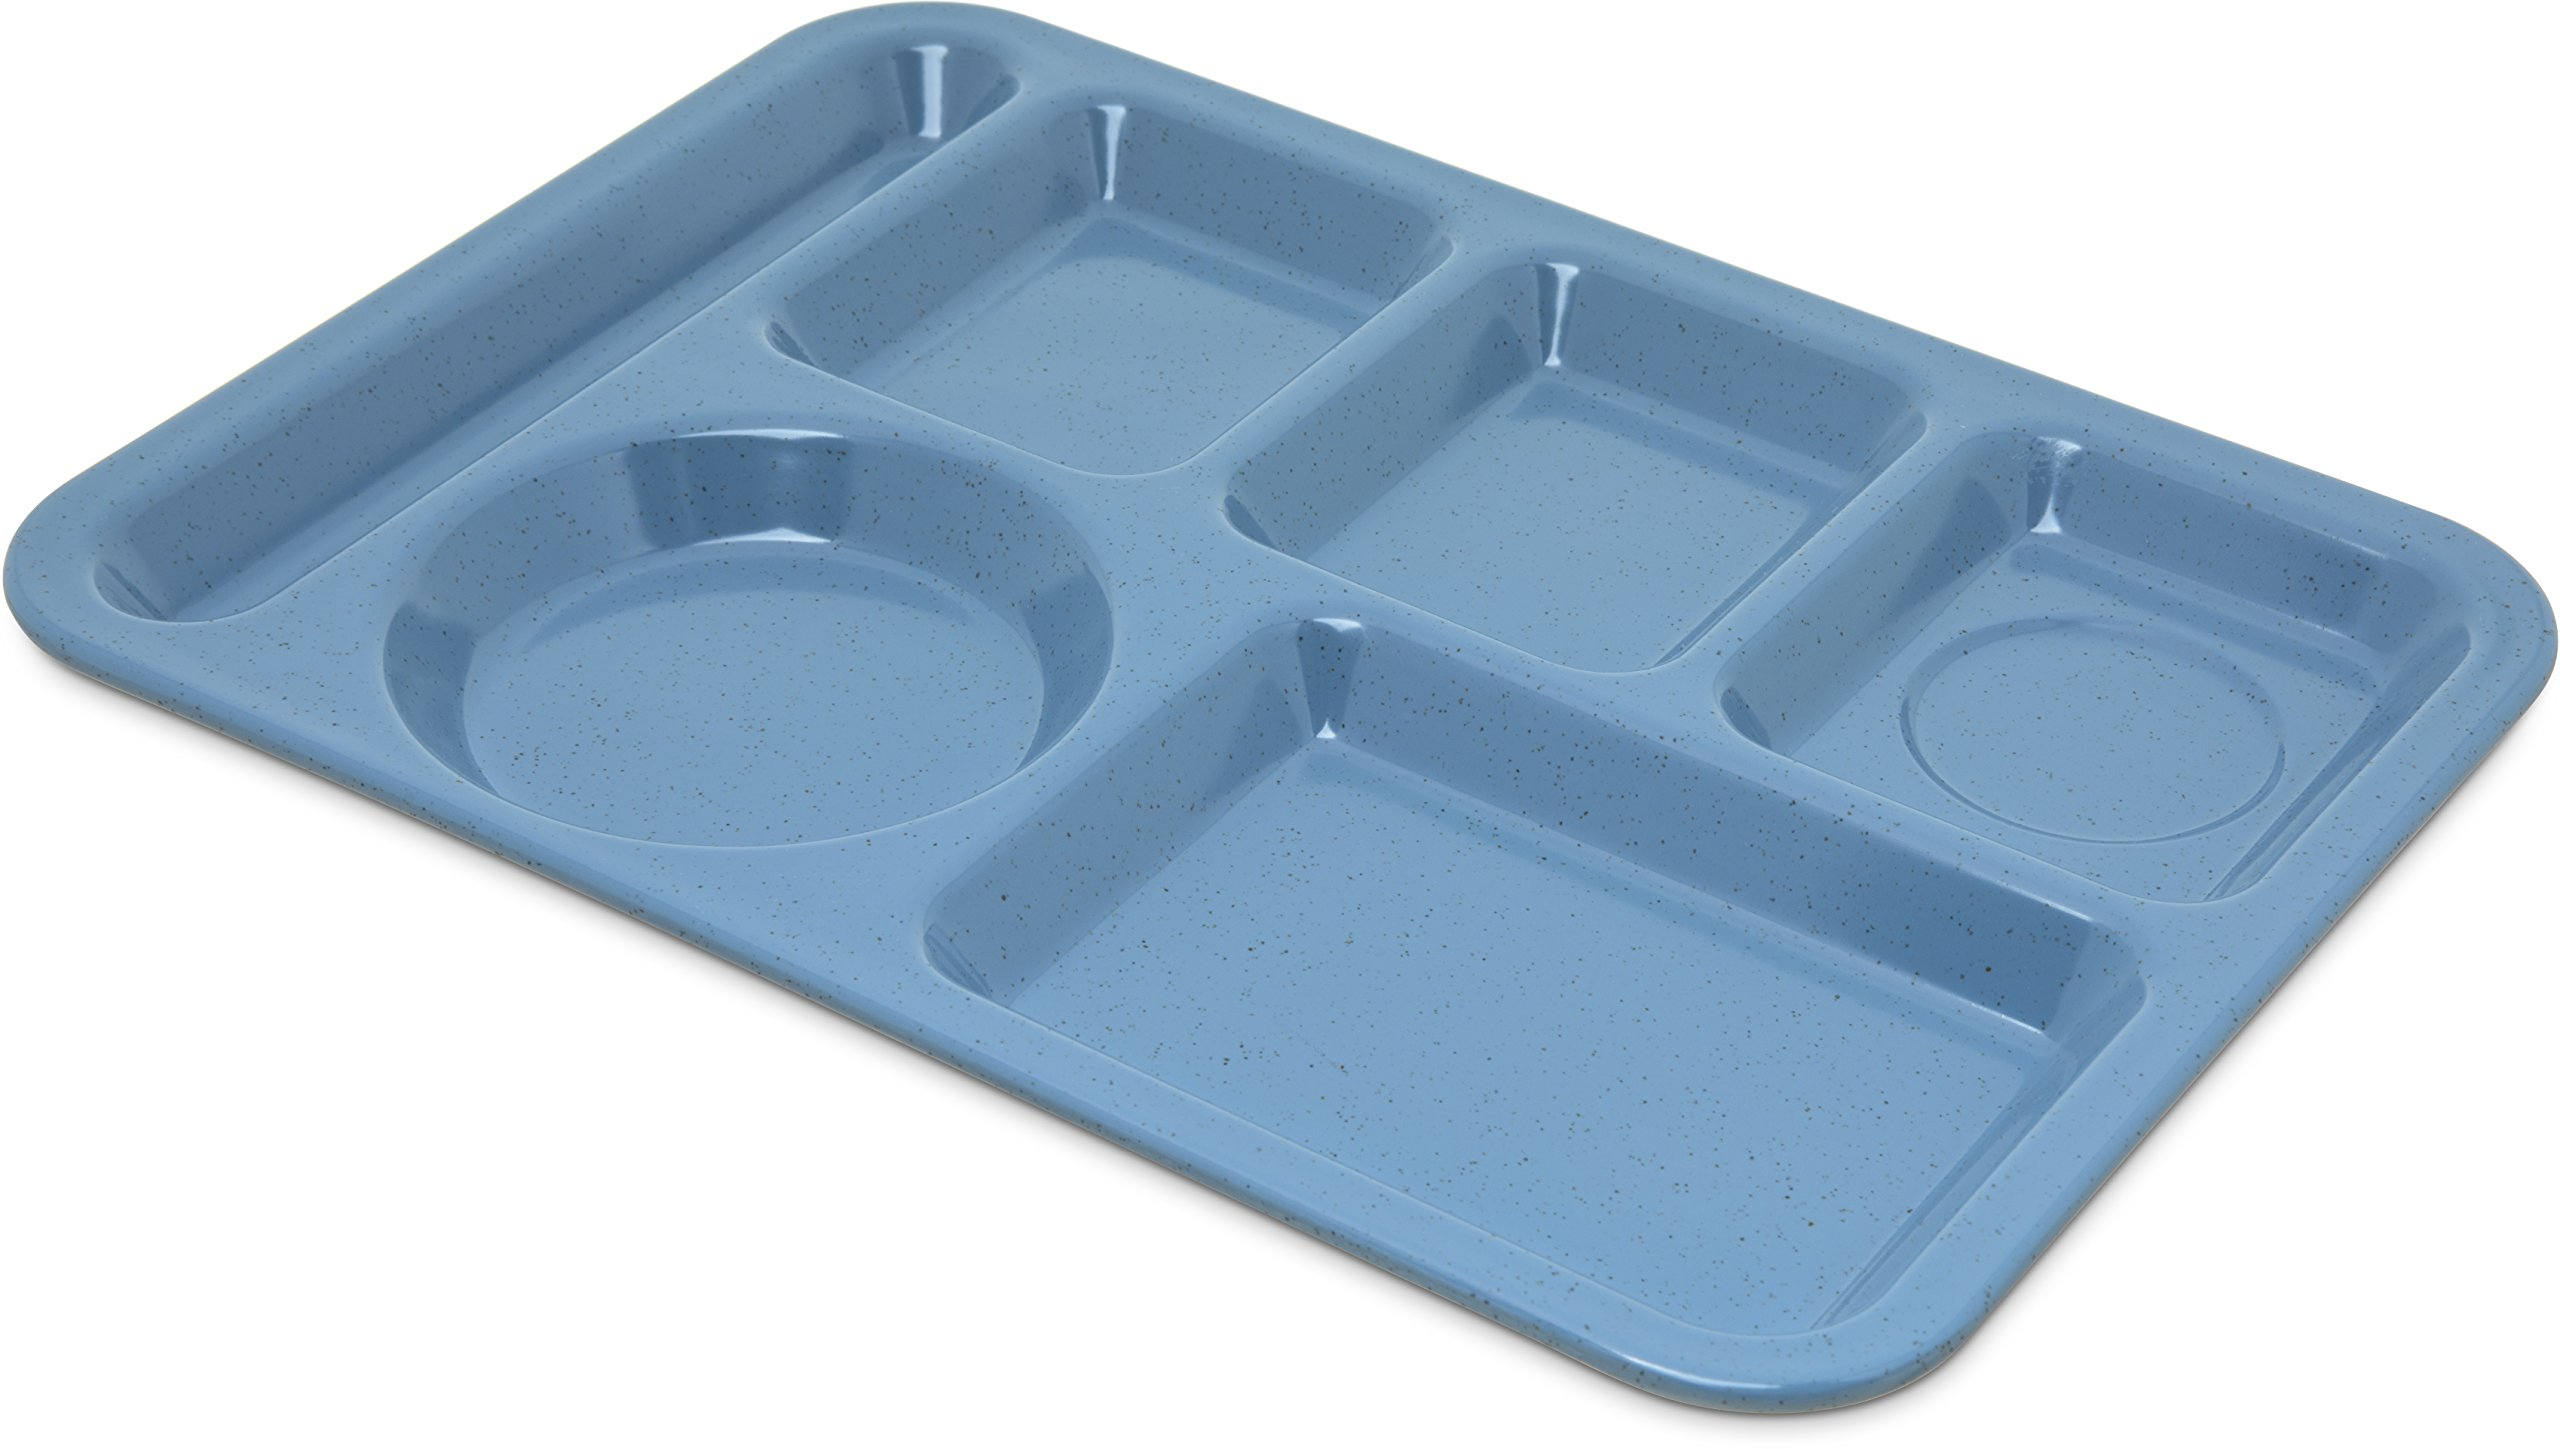 Carlisle 4398192 Left-Hand Heavy Weight 6-Compartment Cafeteria / Fast Food Tray, 10'' x 14'', Sandshade (Pack of 12)